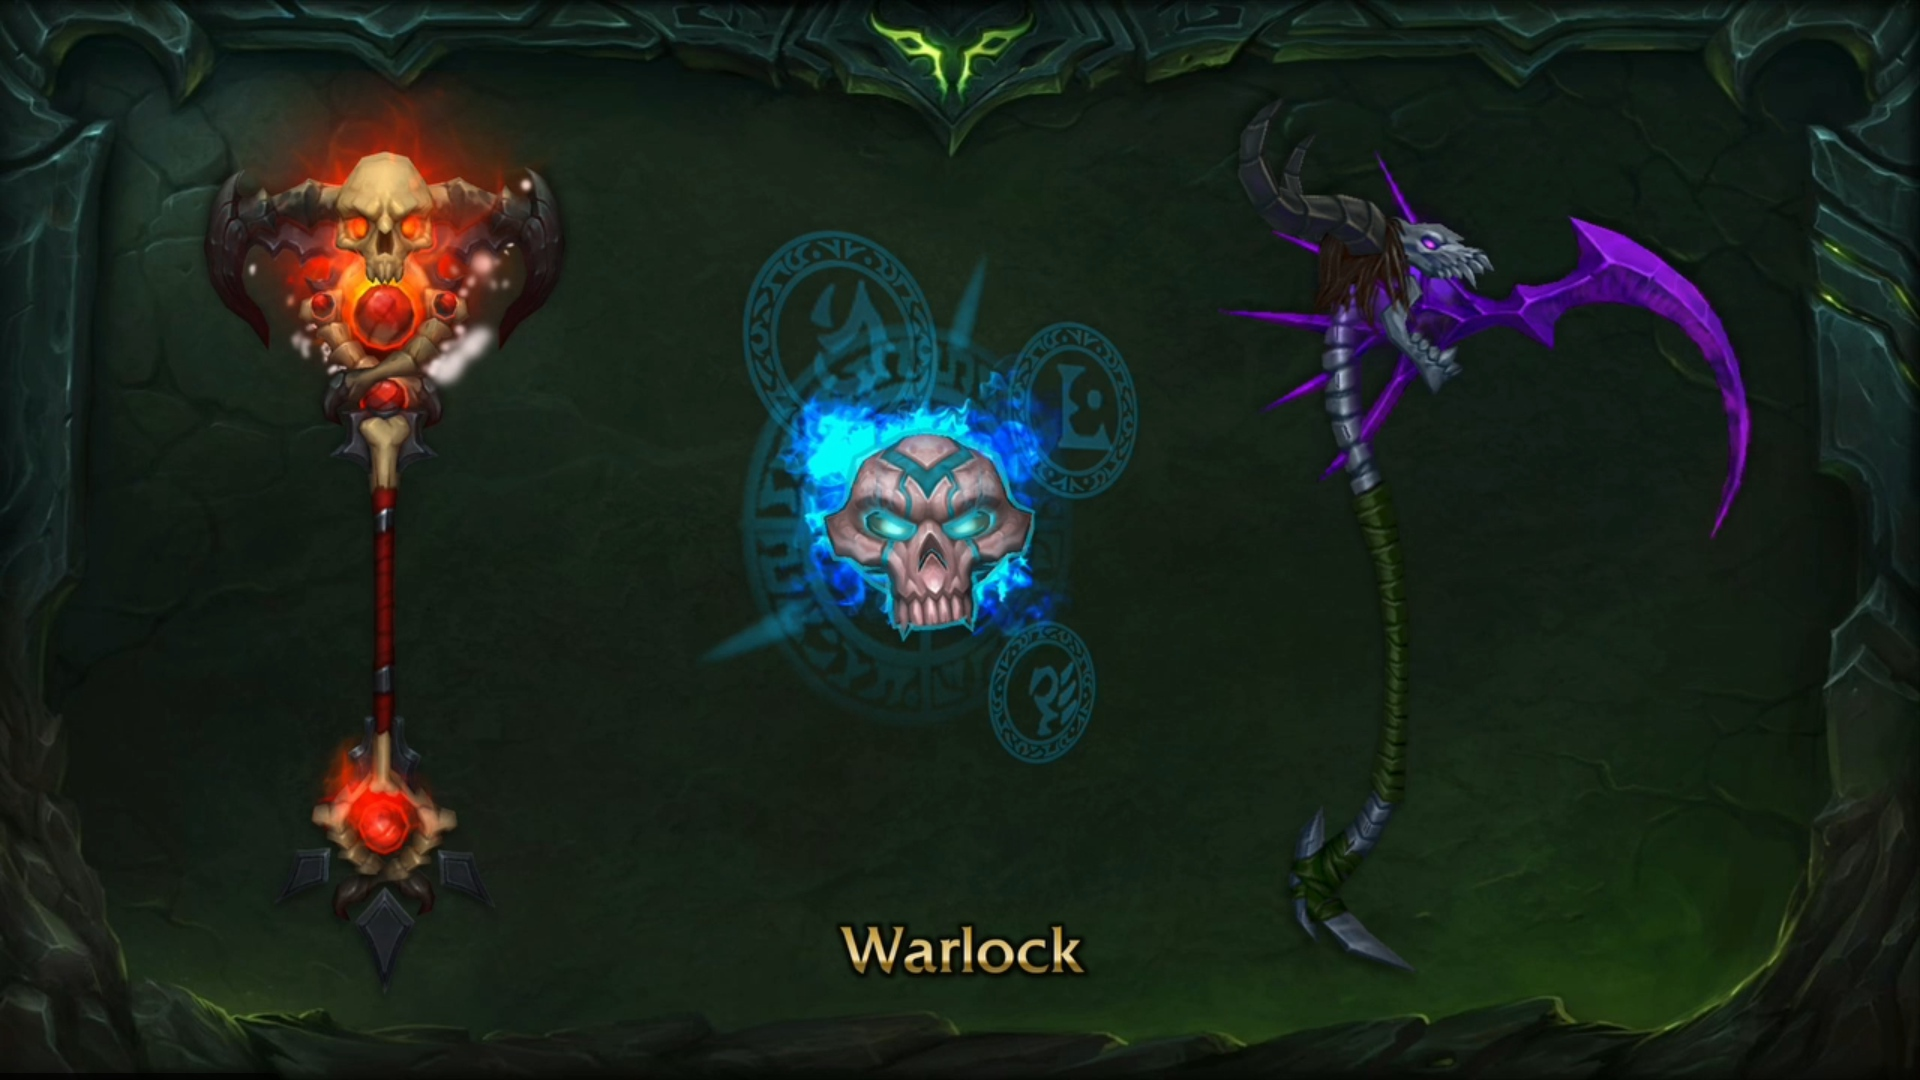 I just completed all the Mage Tower challenges on my Warlock